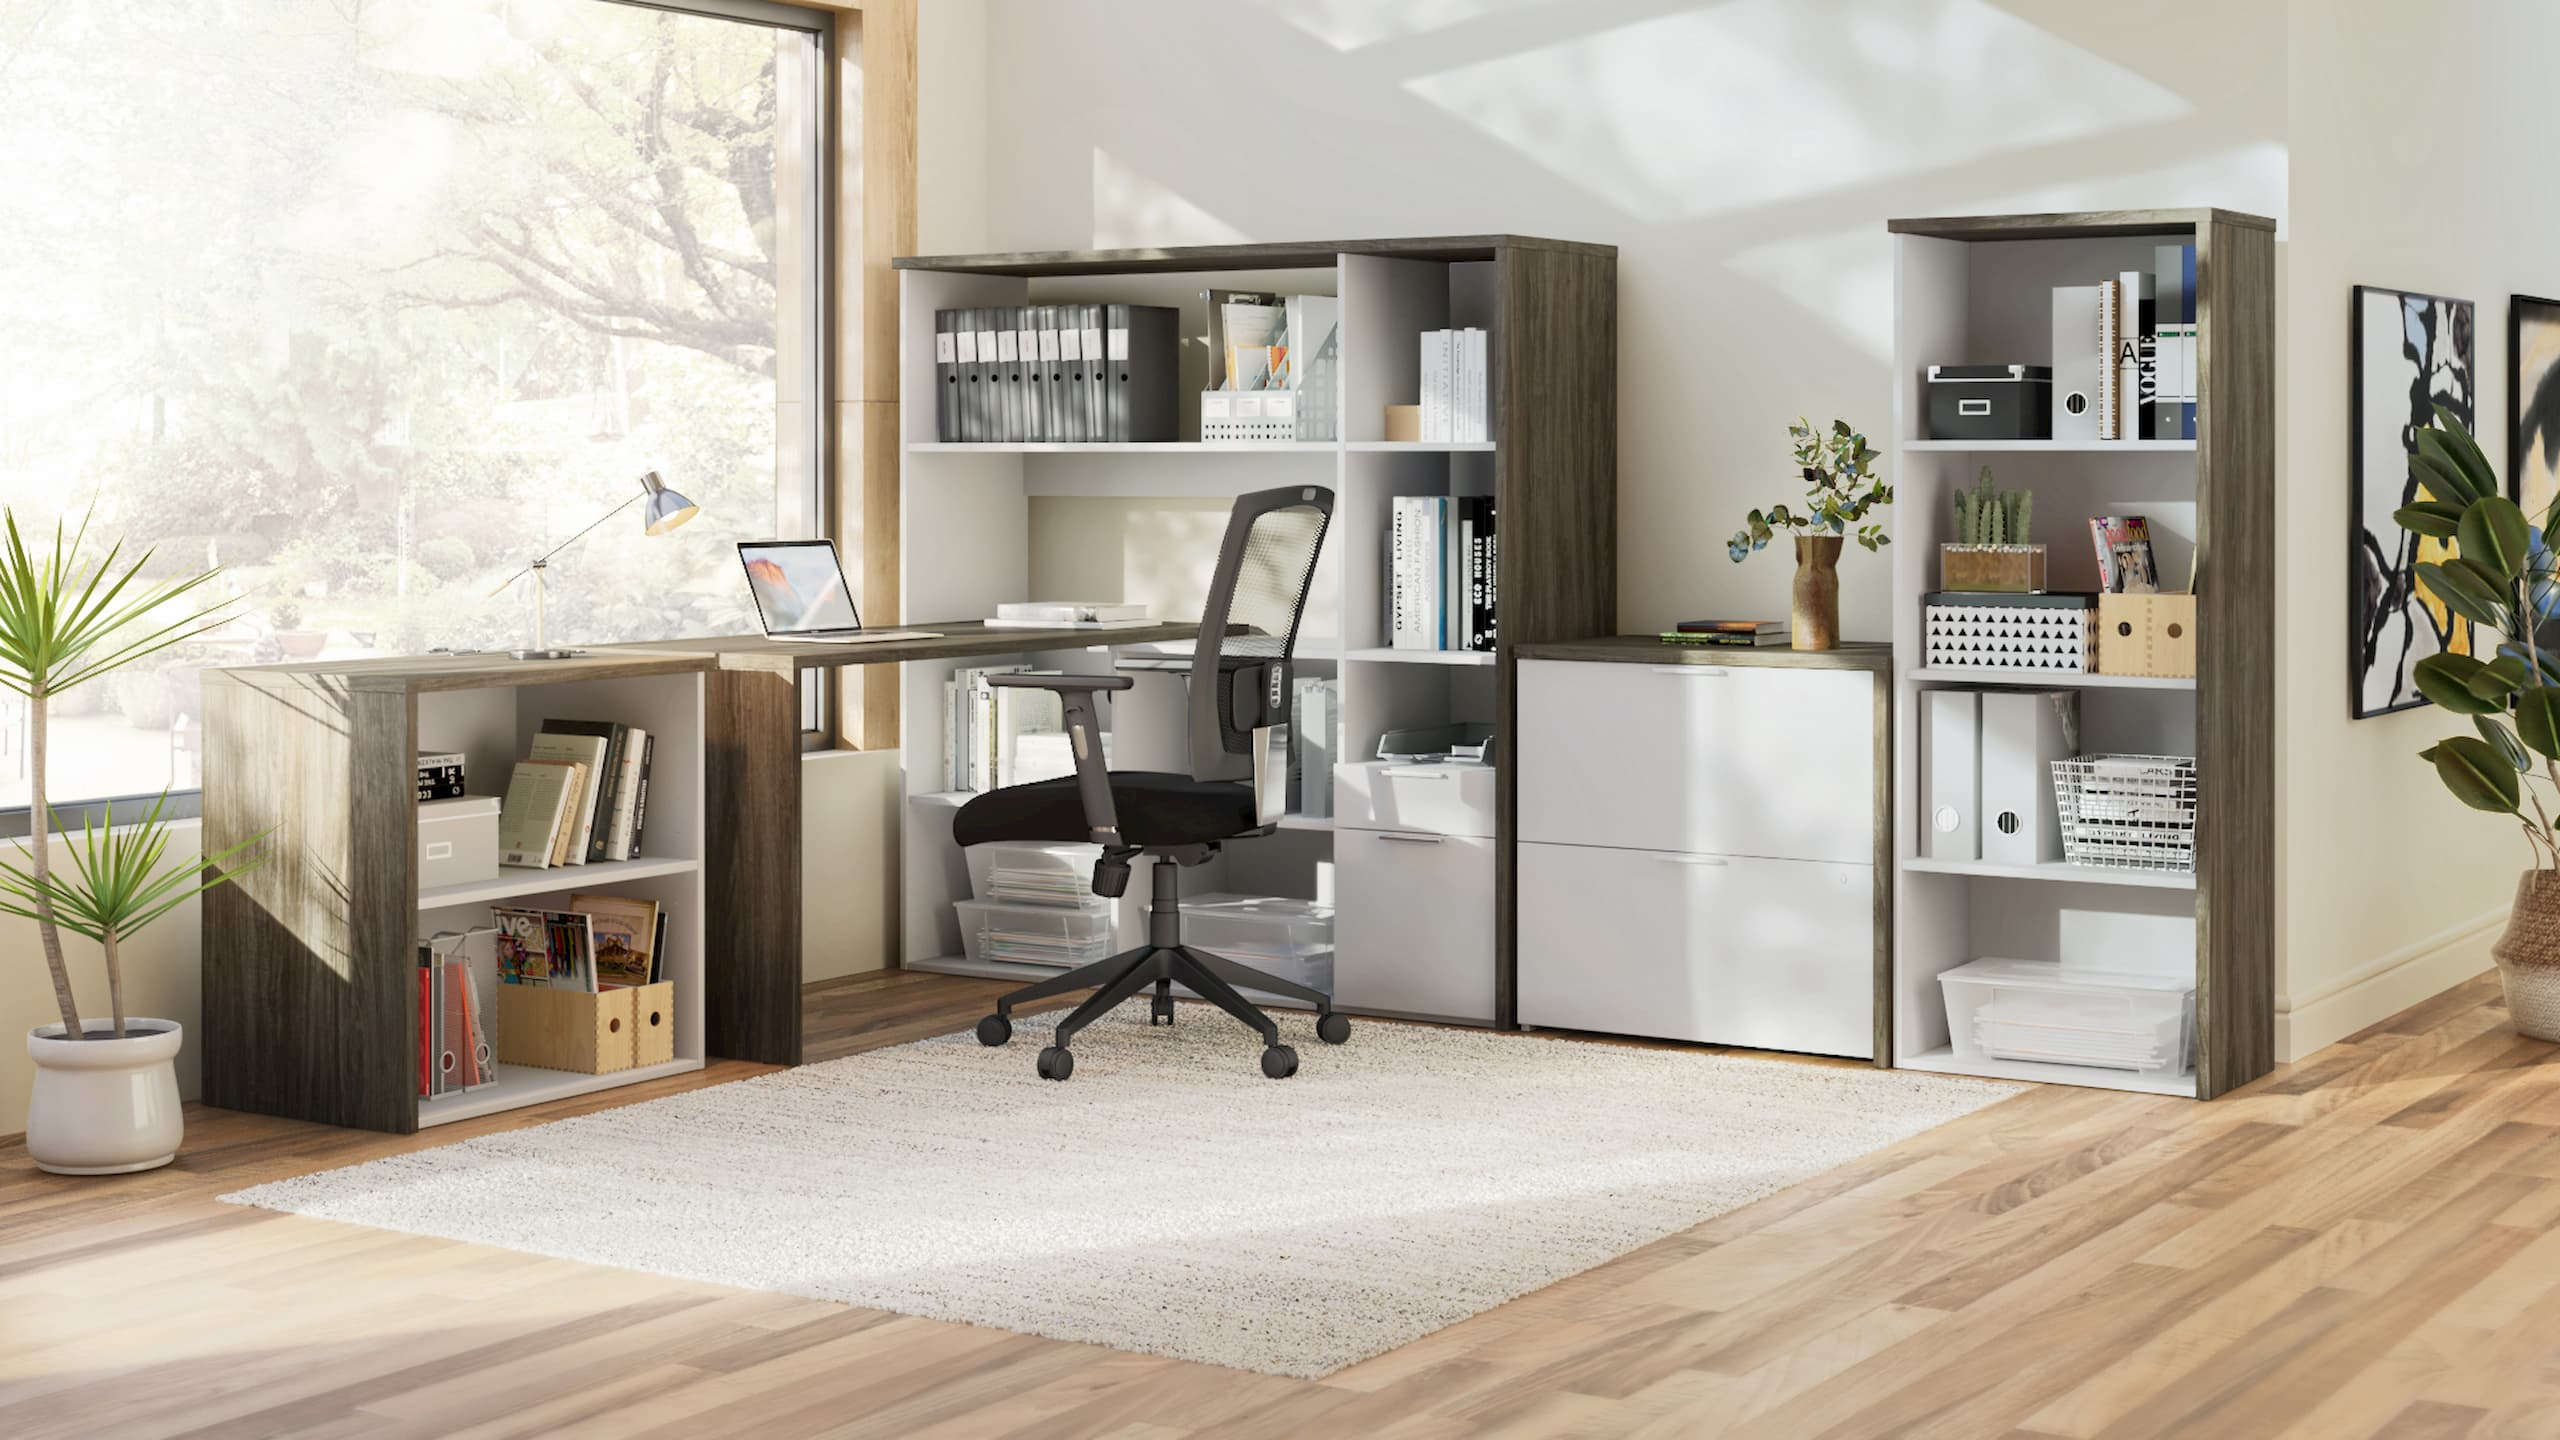 Modern home office with plenty of storage space